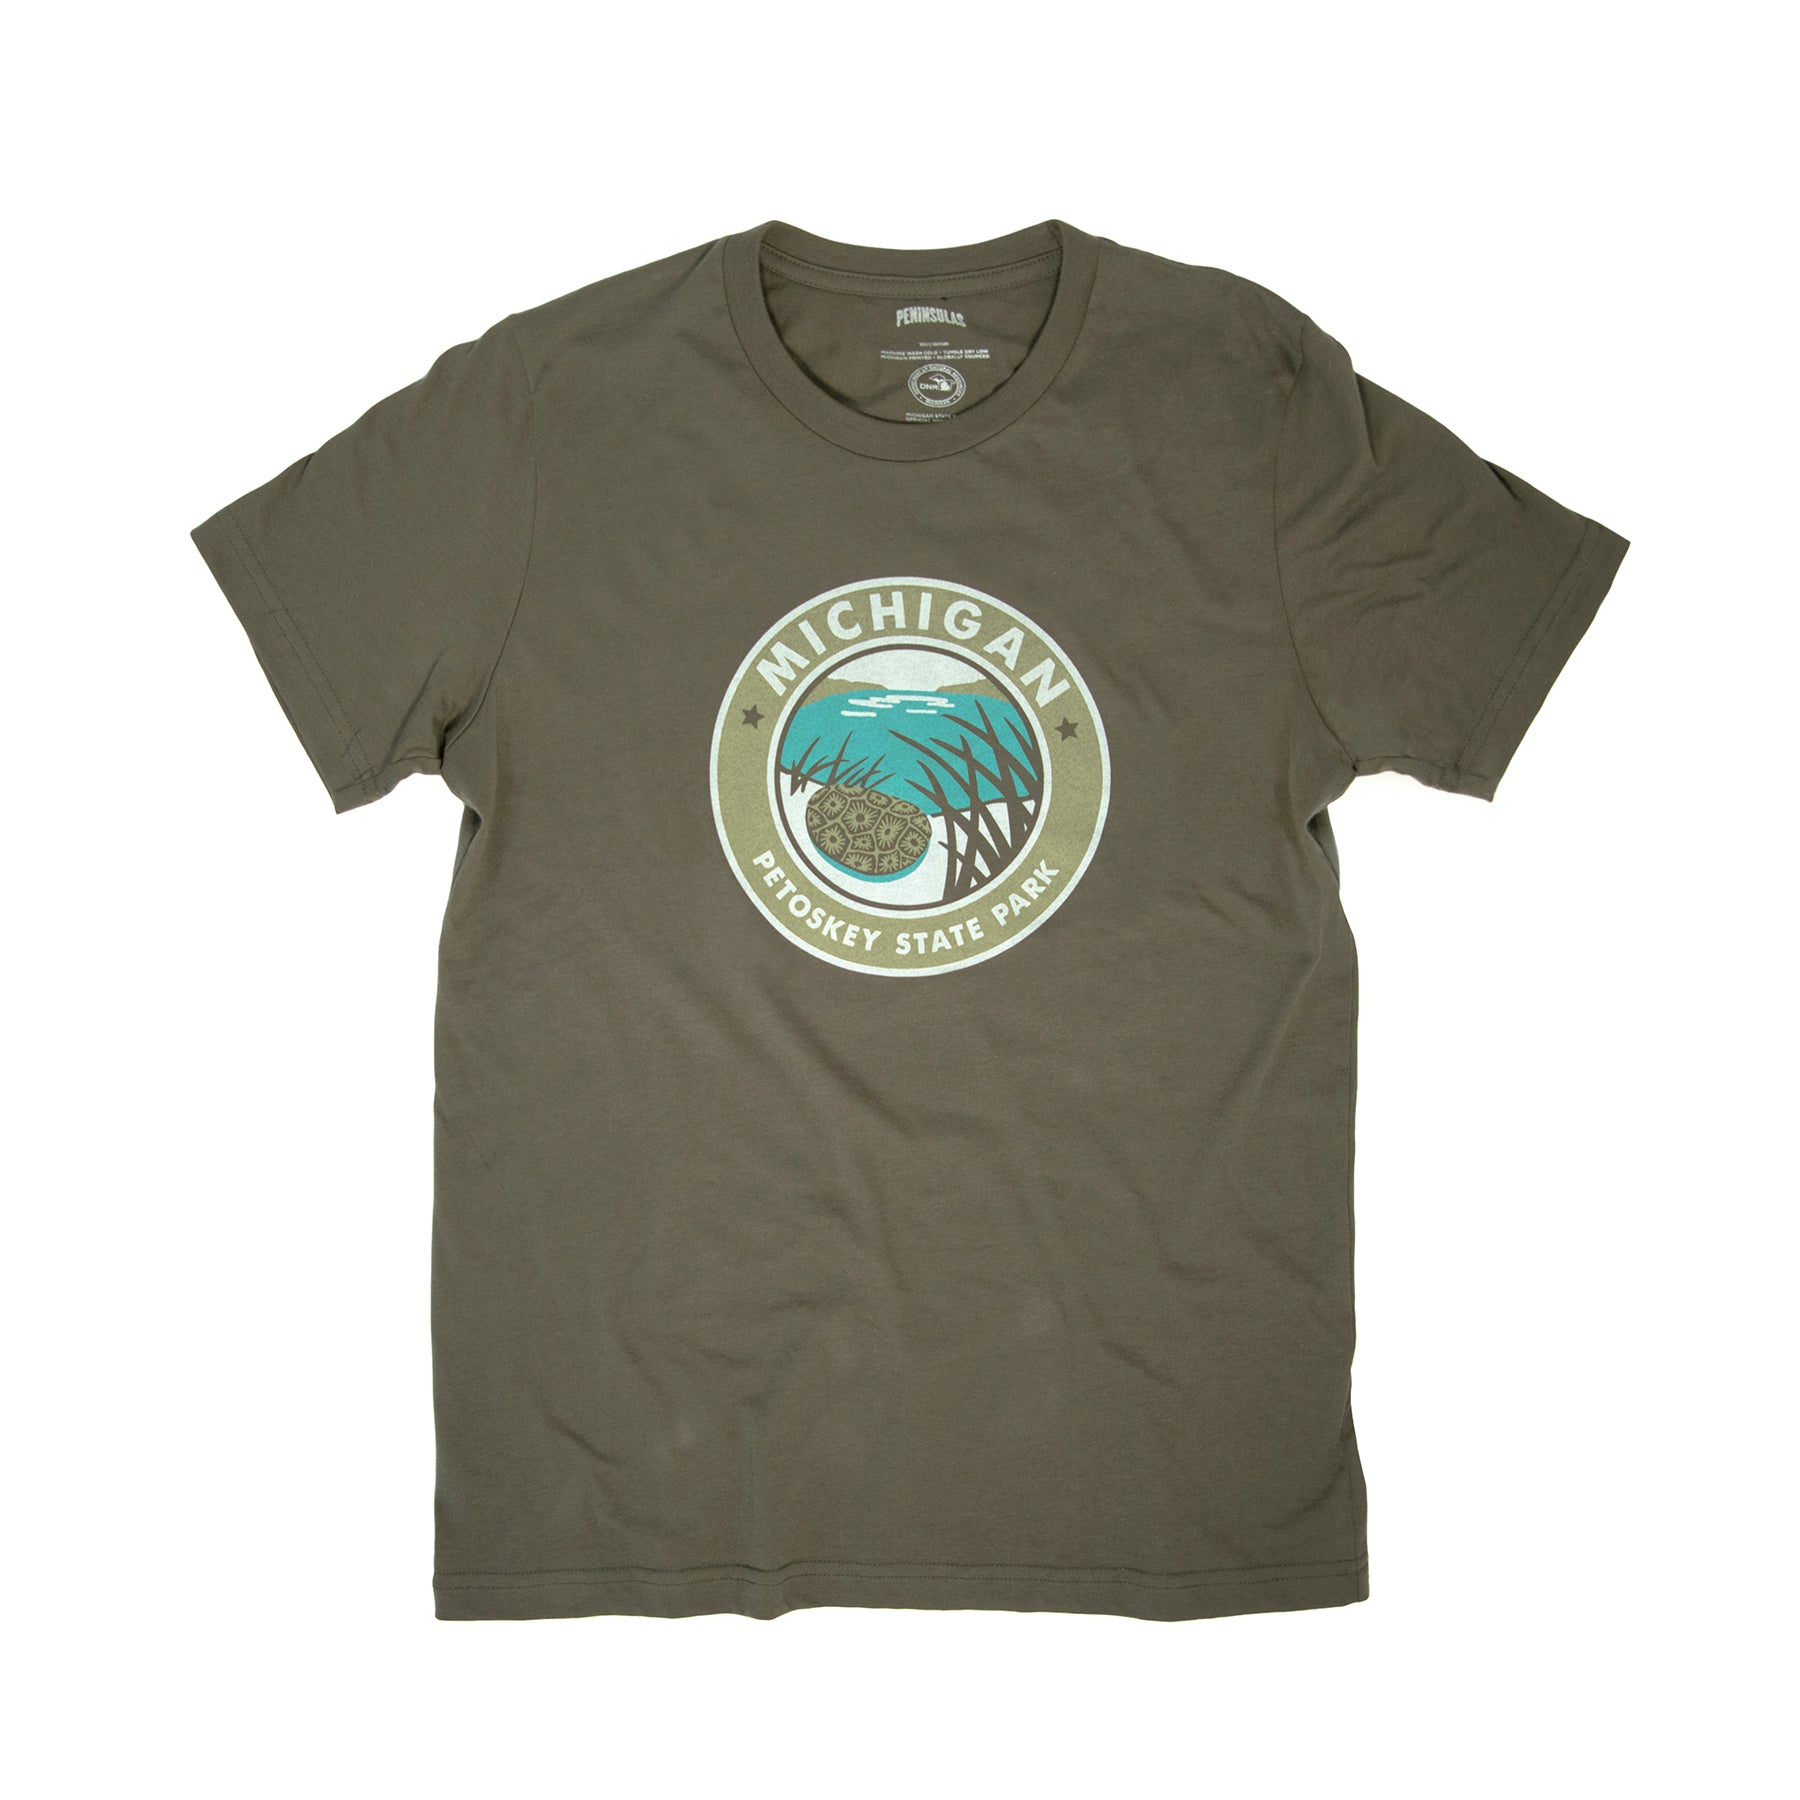 PTW Petoskey State Park T-Shirt - Army